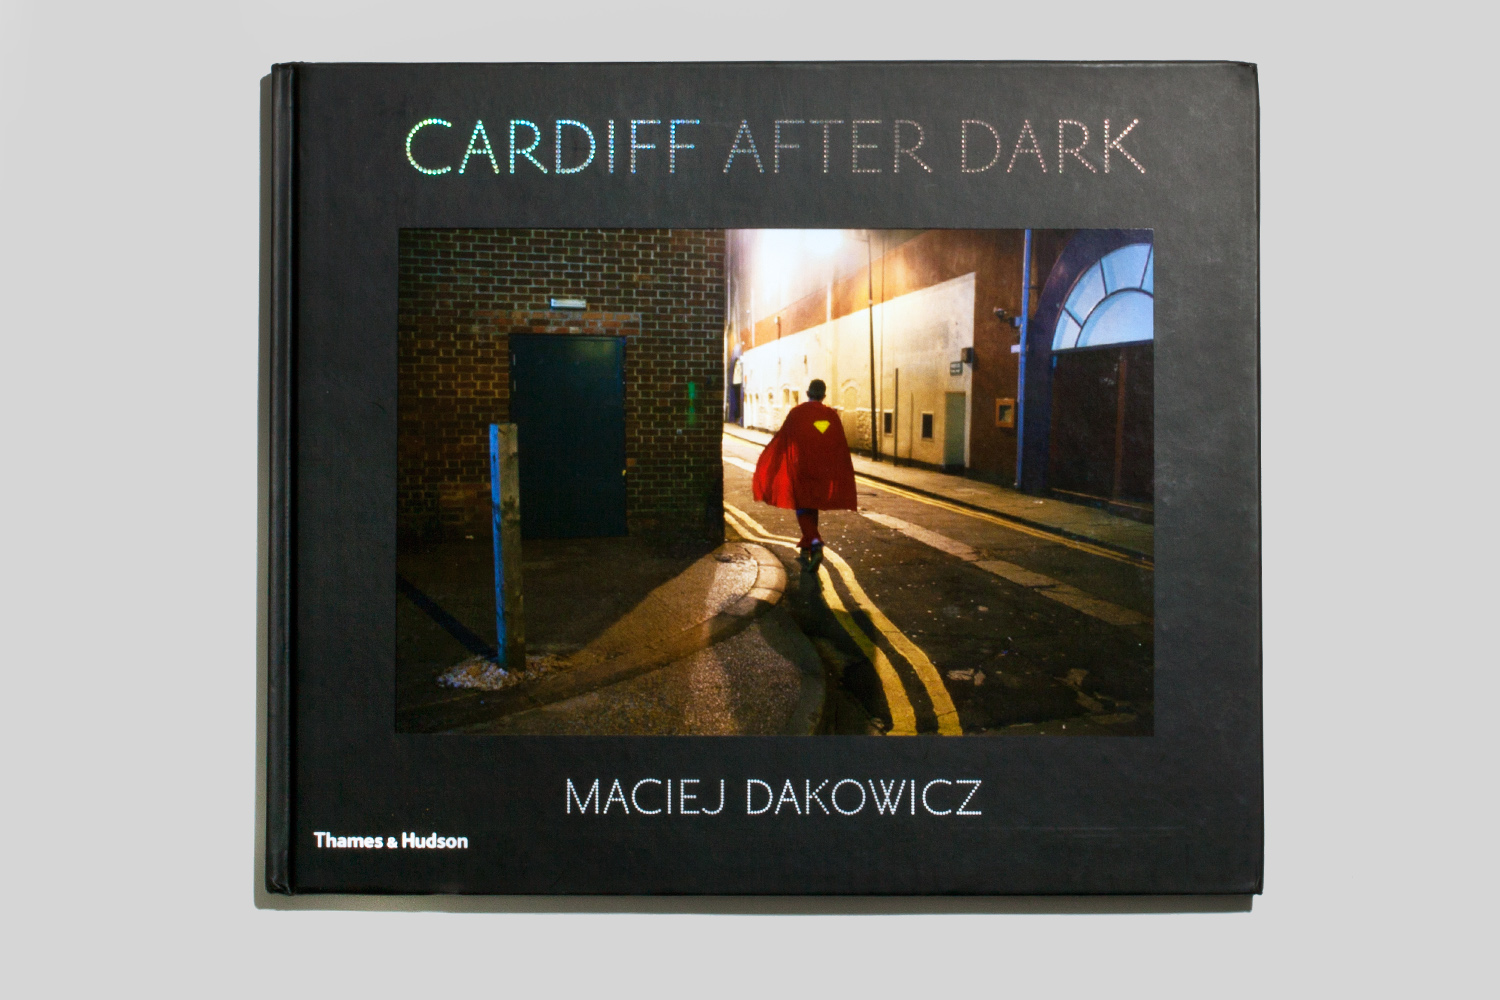 Cardiff After Dark by Marciej Dakowicz , selected by Geoff Dyer, an award-winning author and journalist